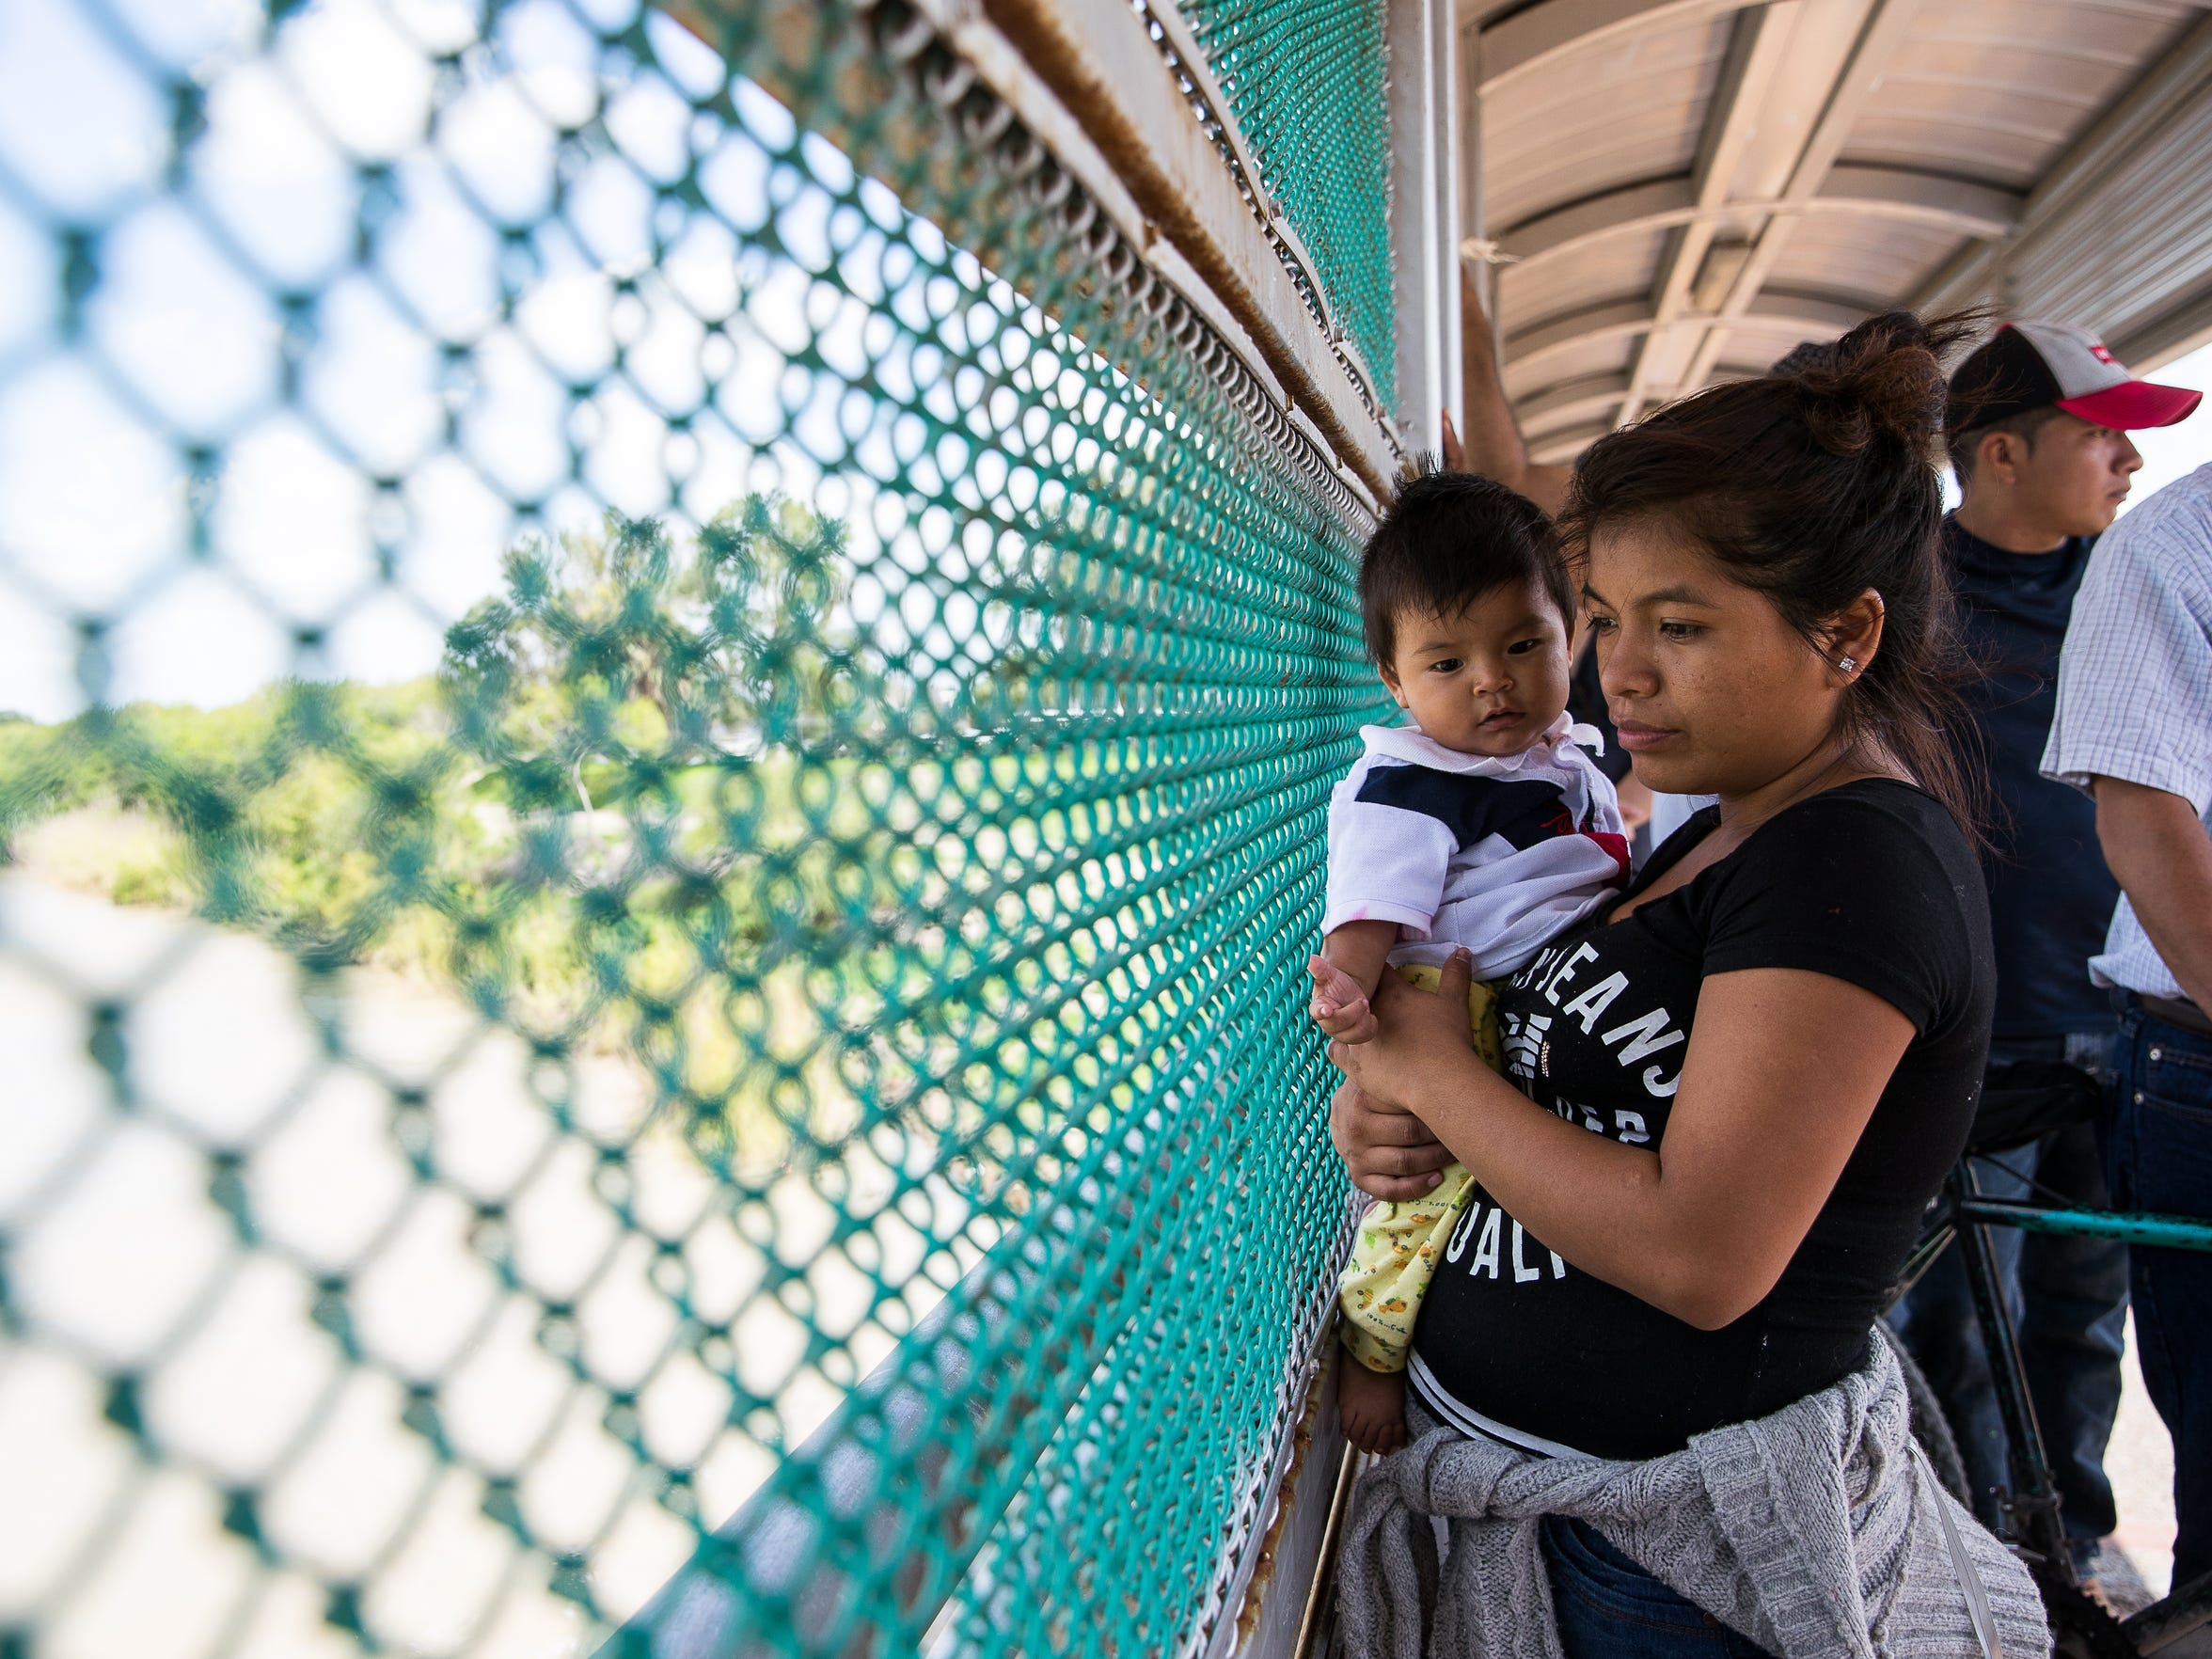 A Guatemalan woman and her child, who have been waiting since 6 a.m. seeking asylum, wait on the Mexican side of the international bridge to enter the U.S in Brownsville, Texas, on Wednesday, June 27, 2018.